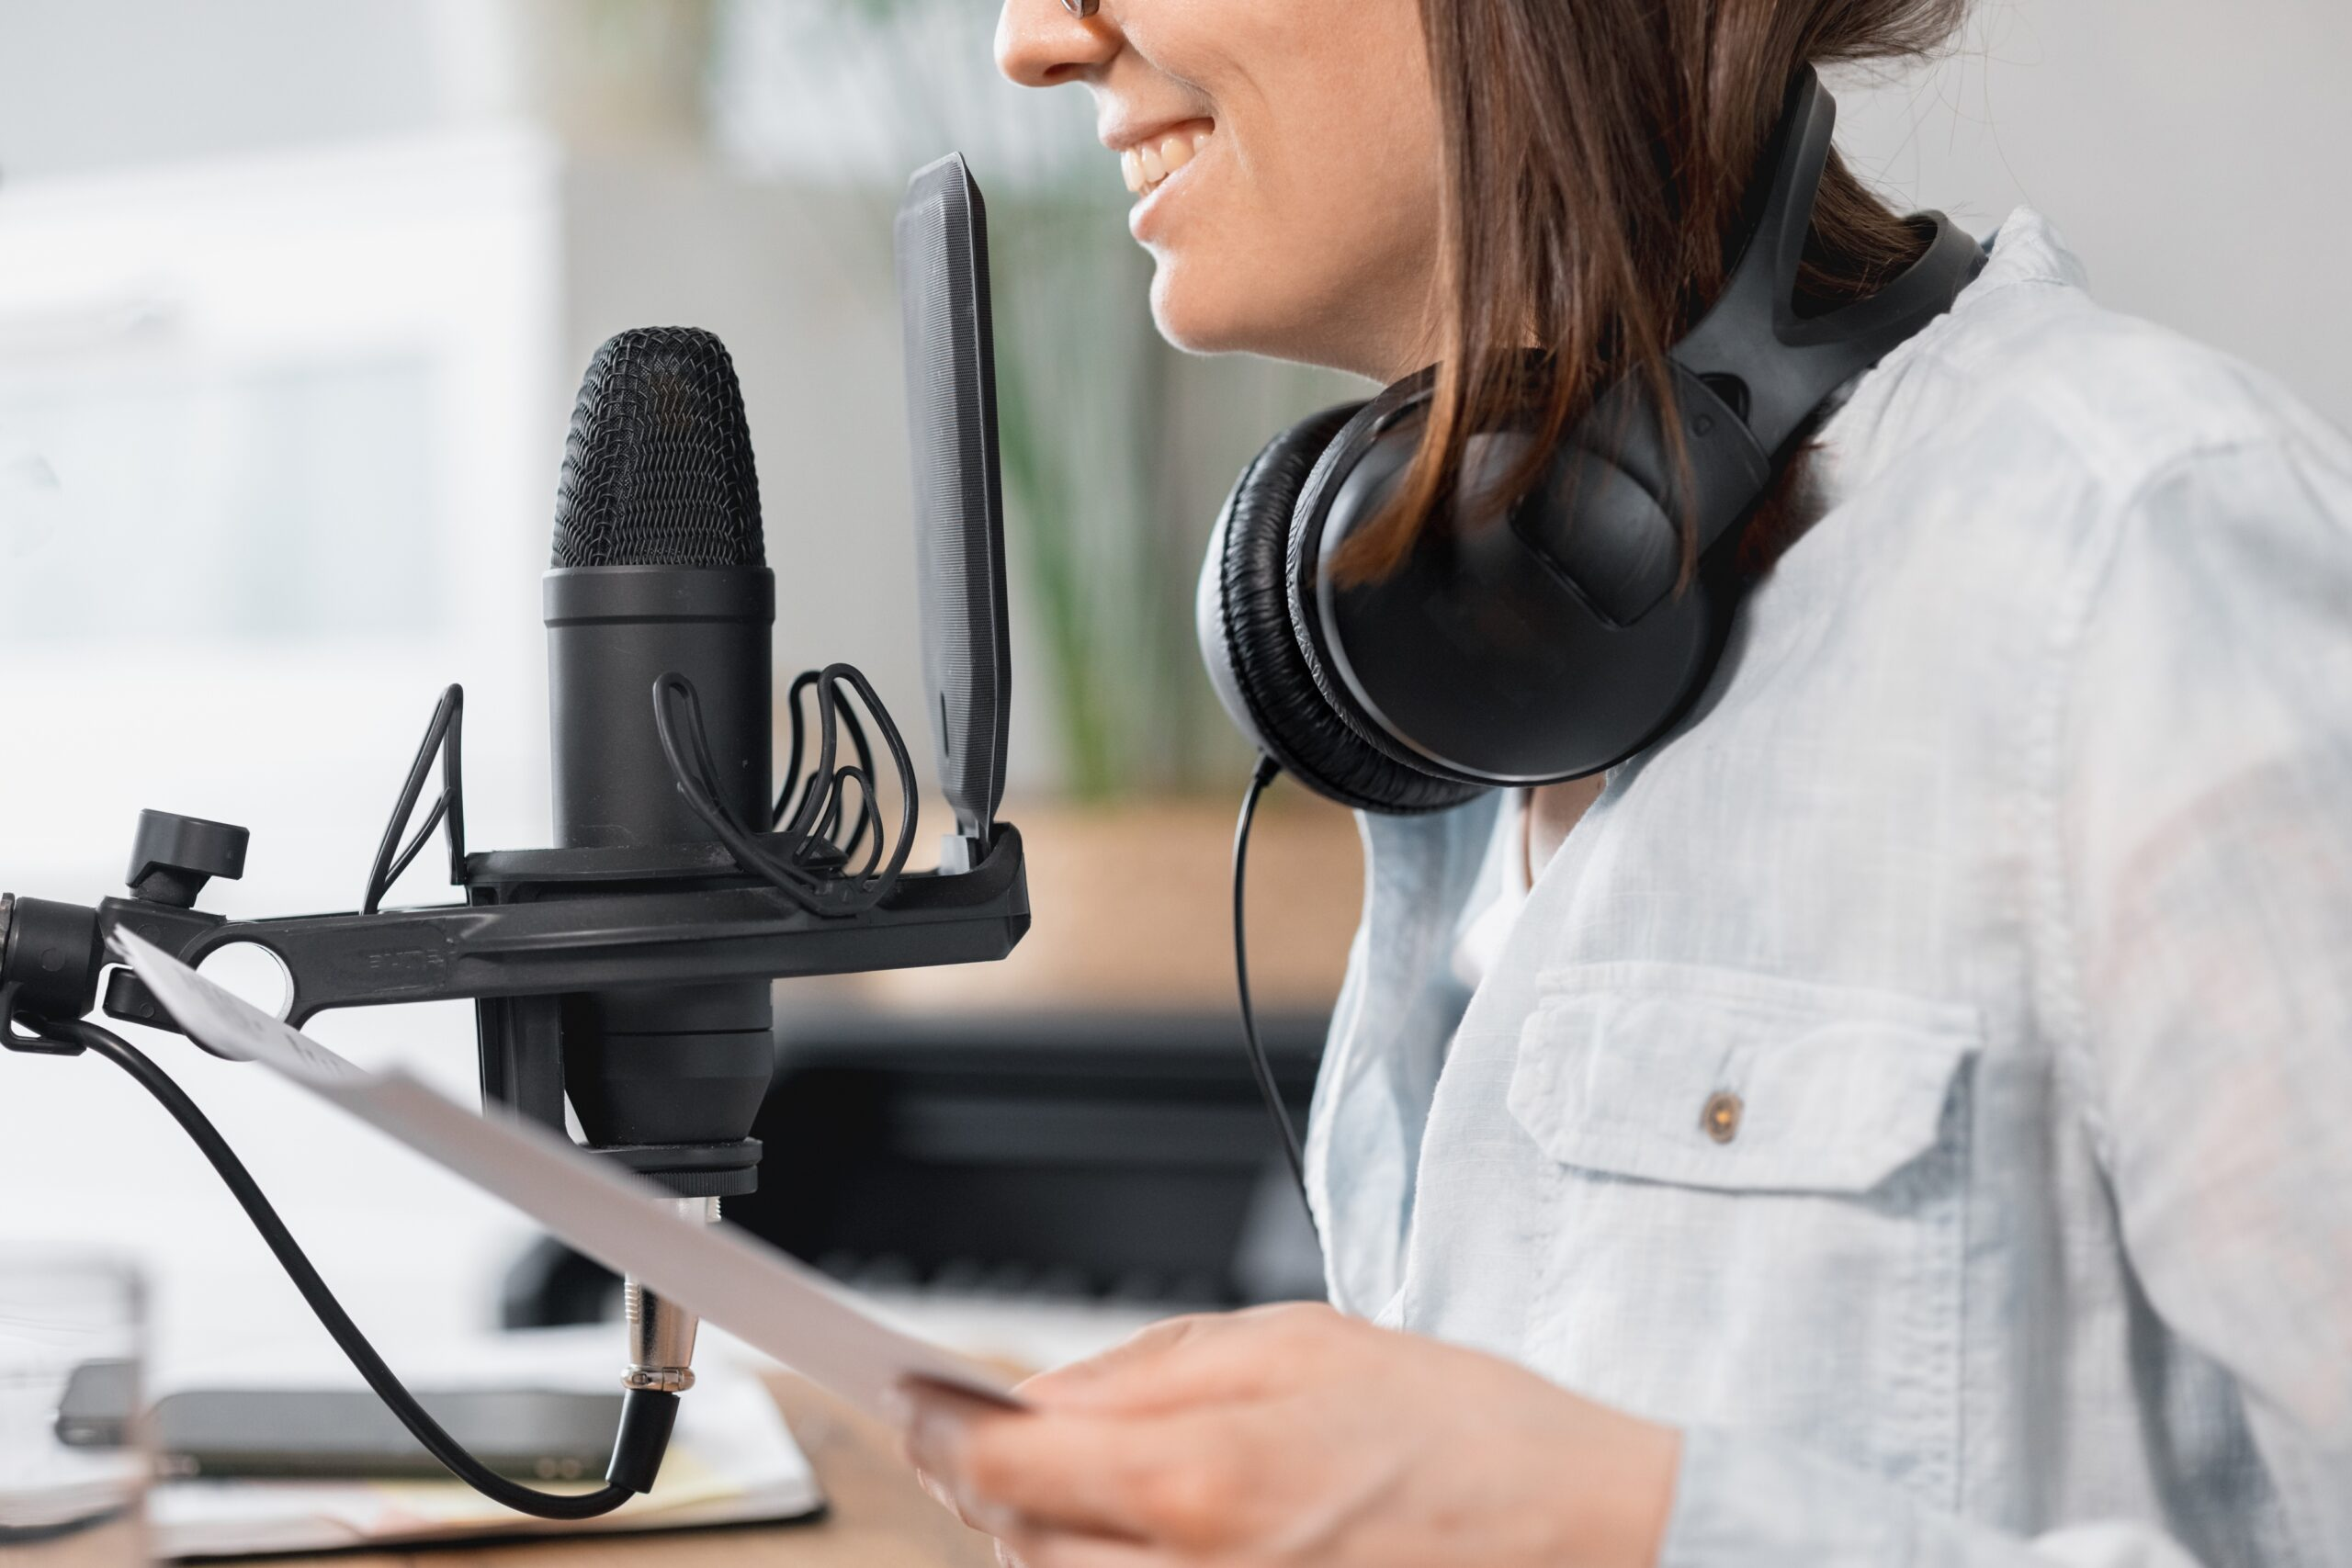 caucasian-millennial-woman-with-a-microphone-and-headphones-recording-a-podcast-in-a-recording-studio_t20_3grer2